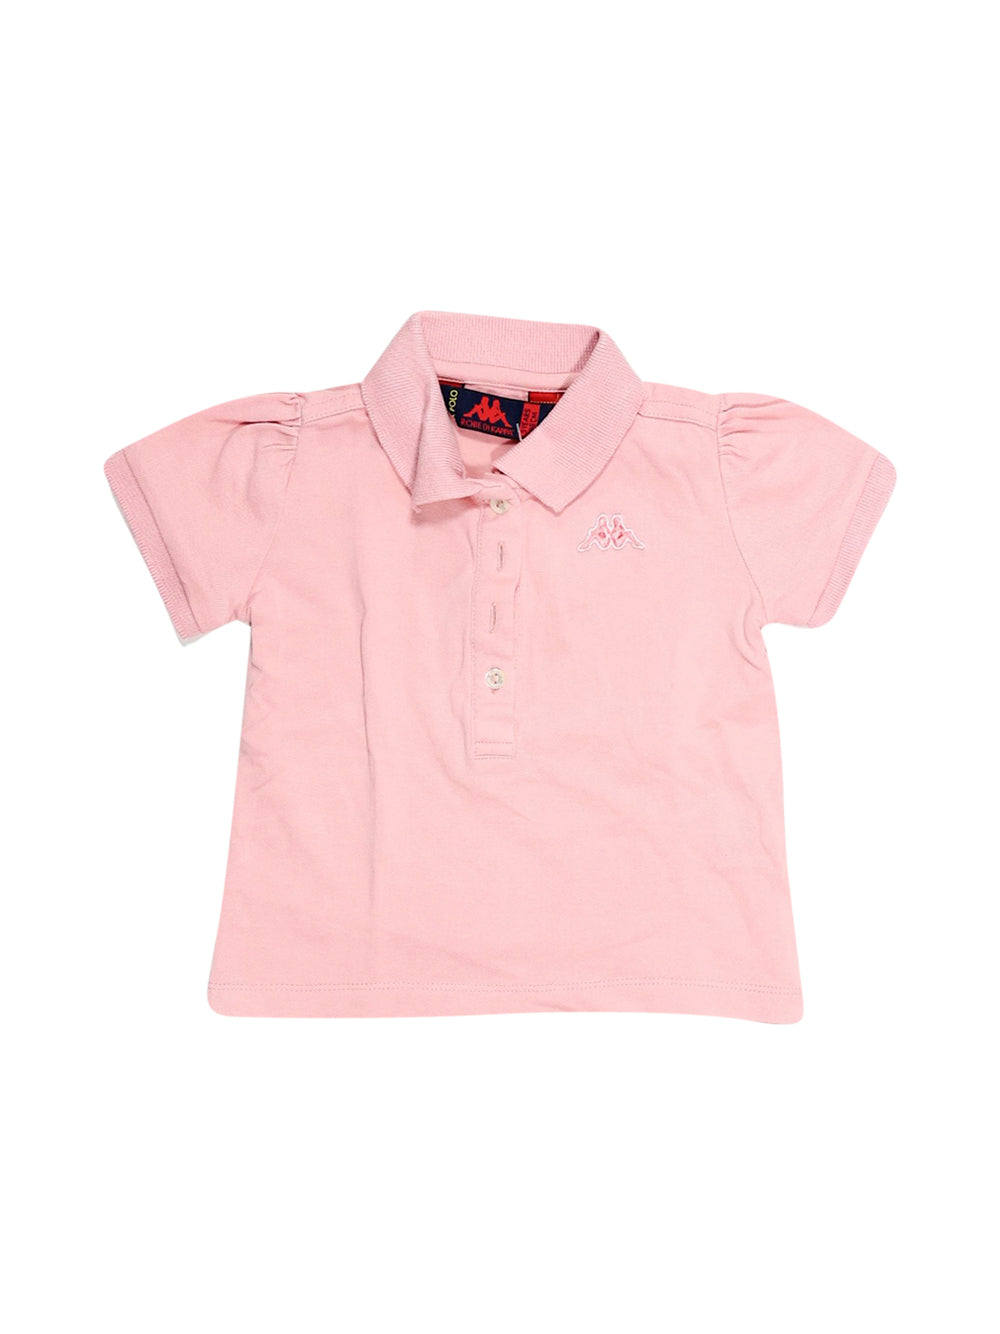 Front photo of Preloved Kappa Pink Girl's polo - size 2-3 yrs